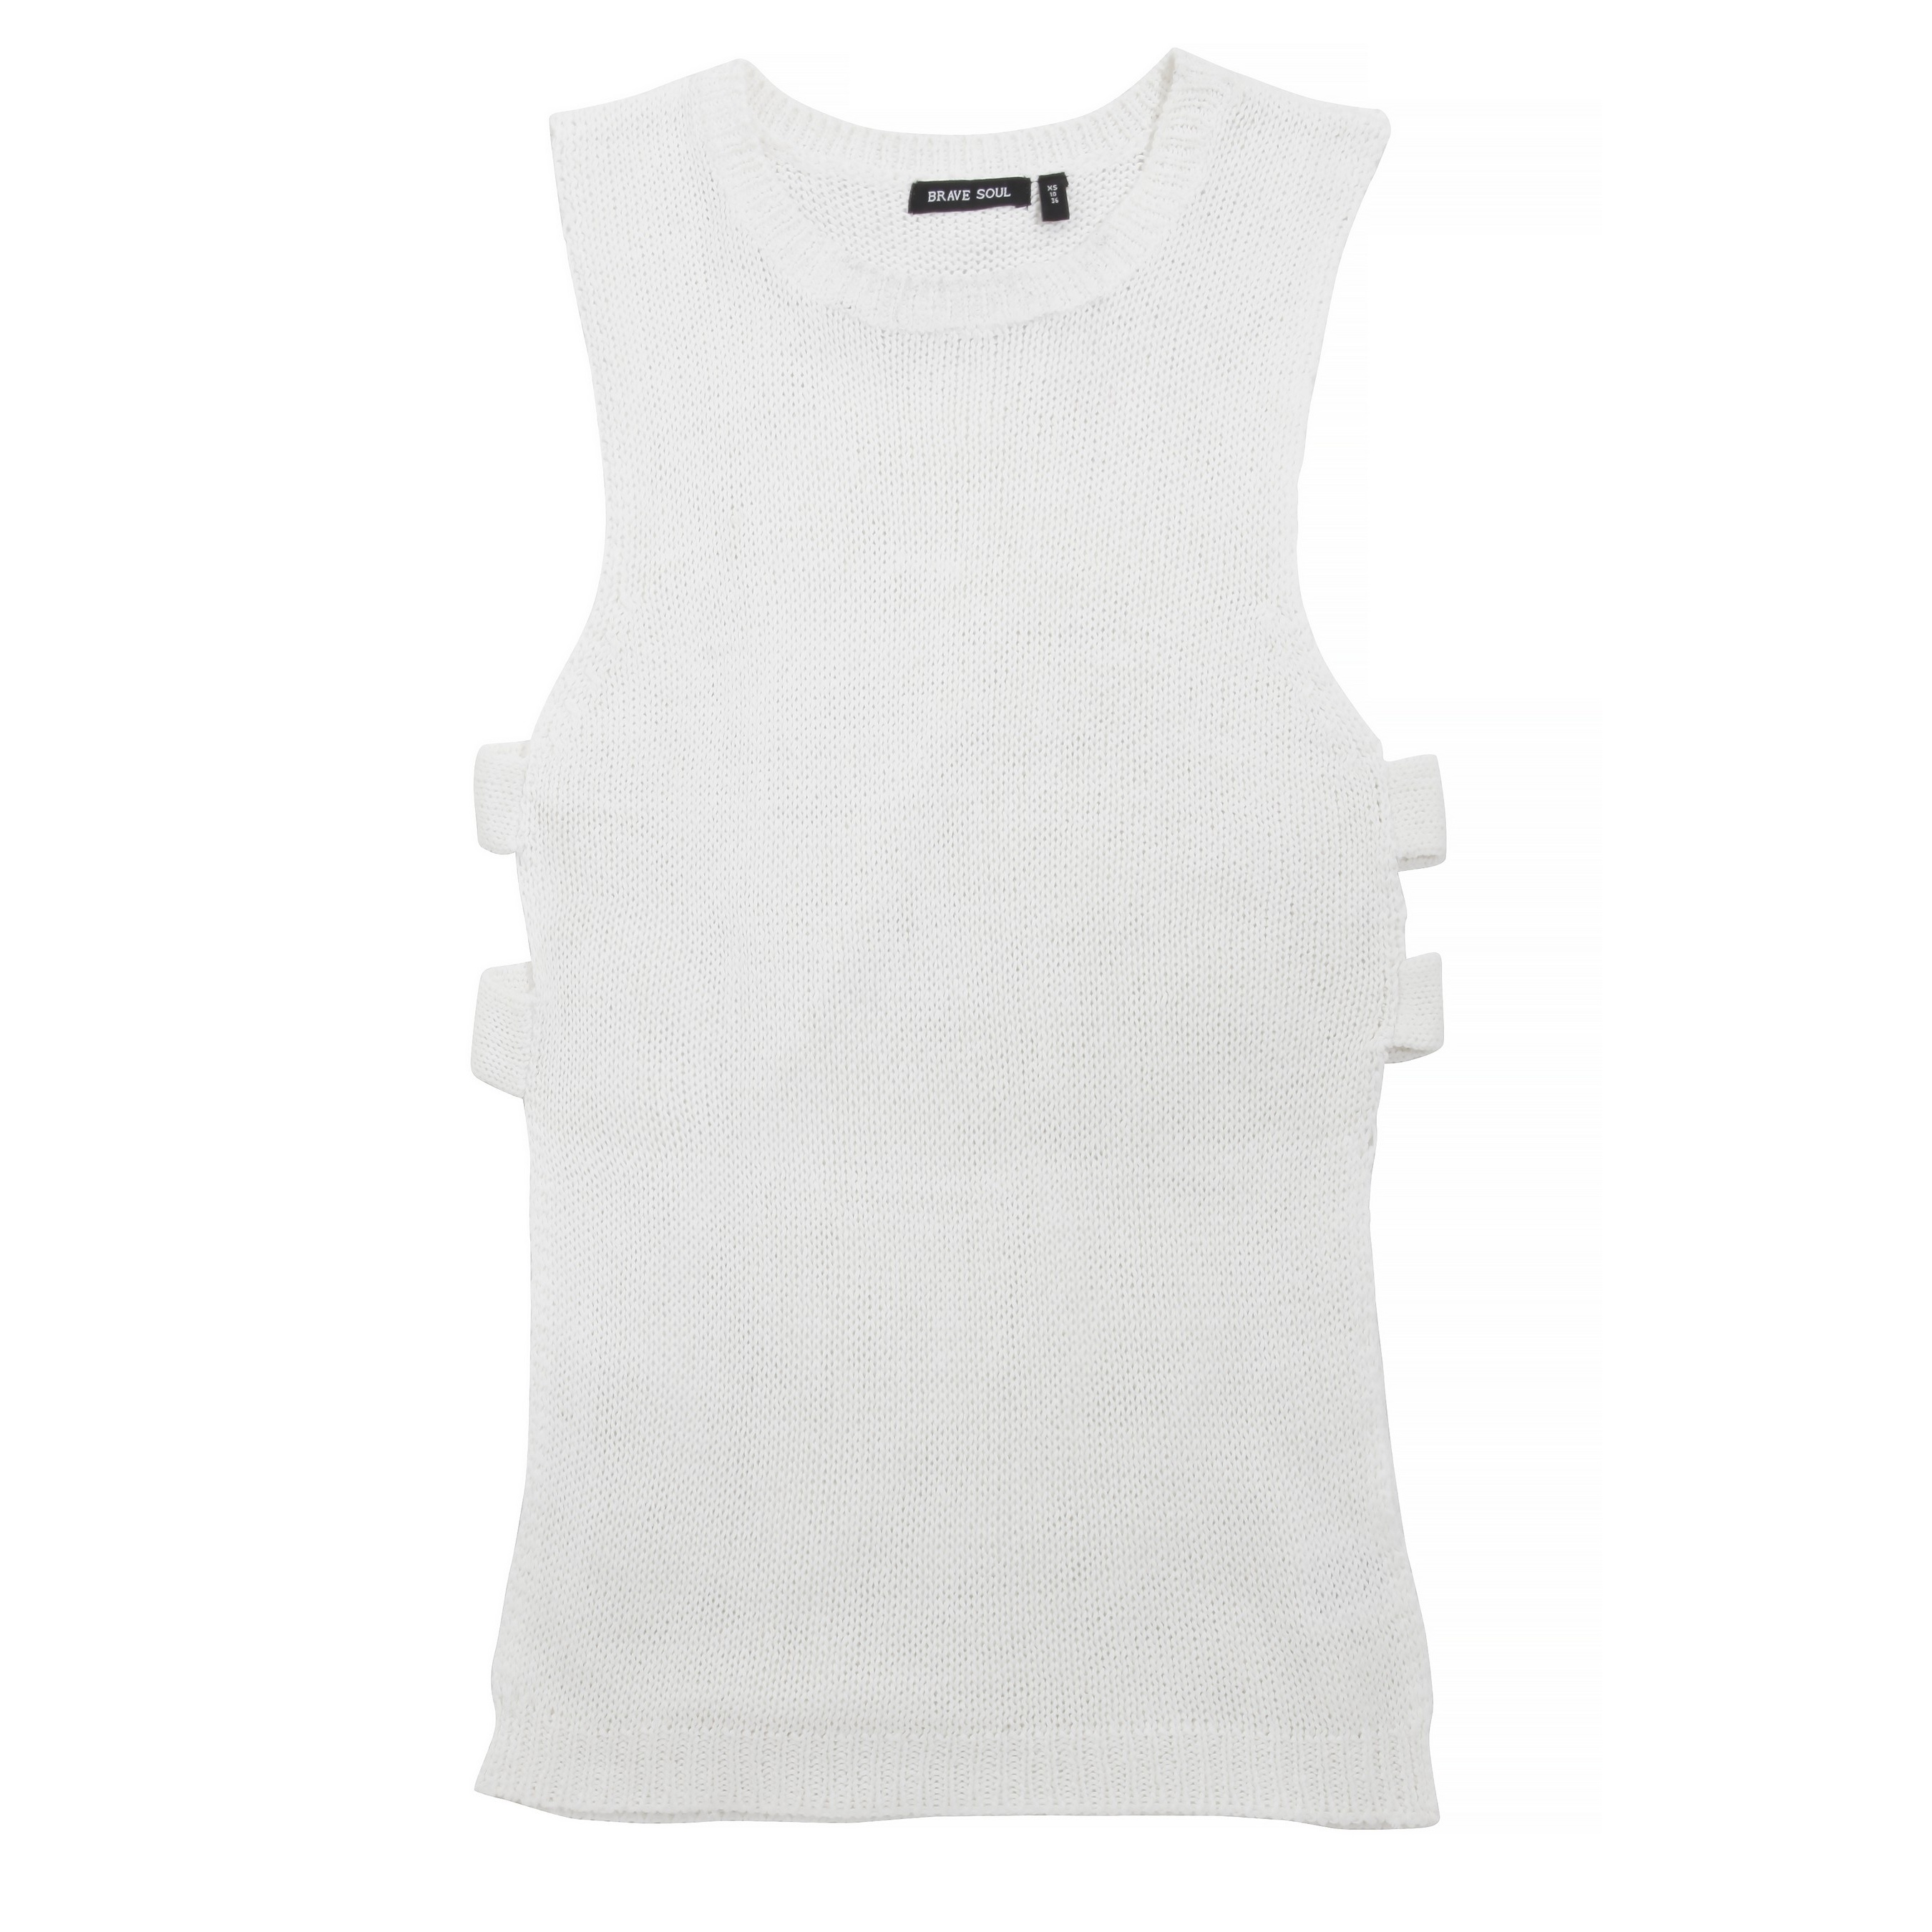 Brave-Soul-Womens-Ladies-Kristy-Sleeveless-Cut-Out-Jumper